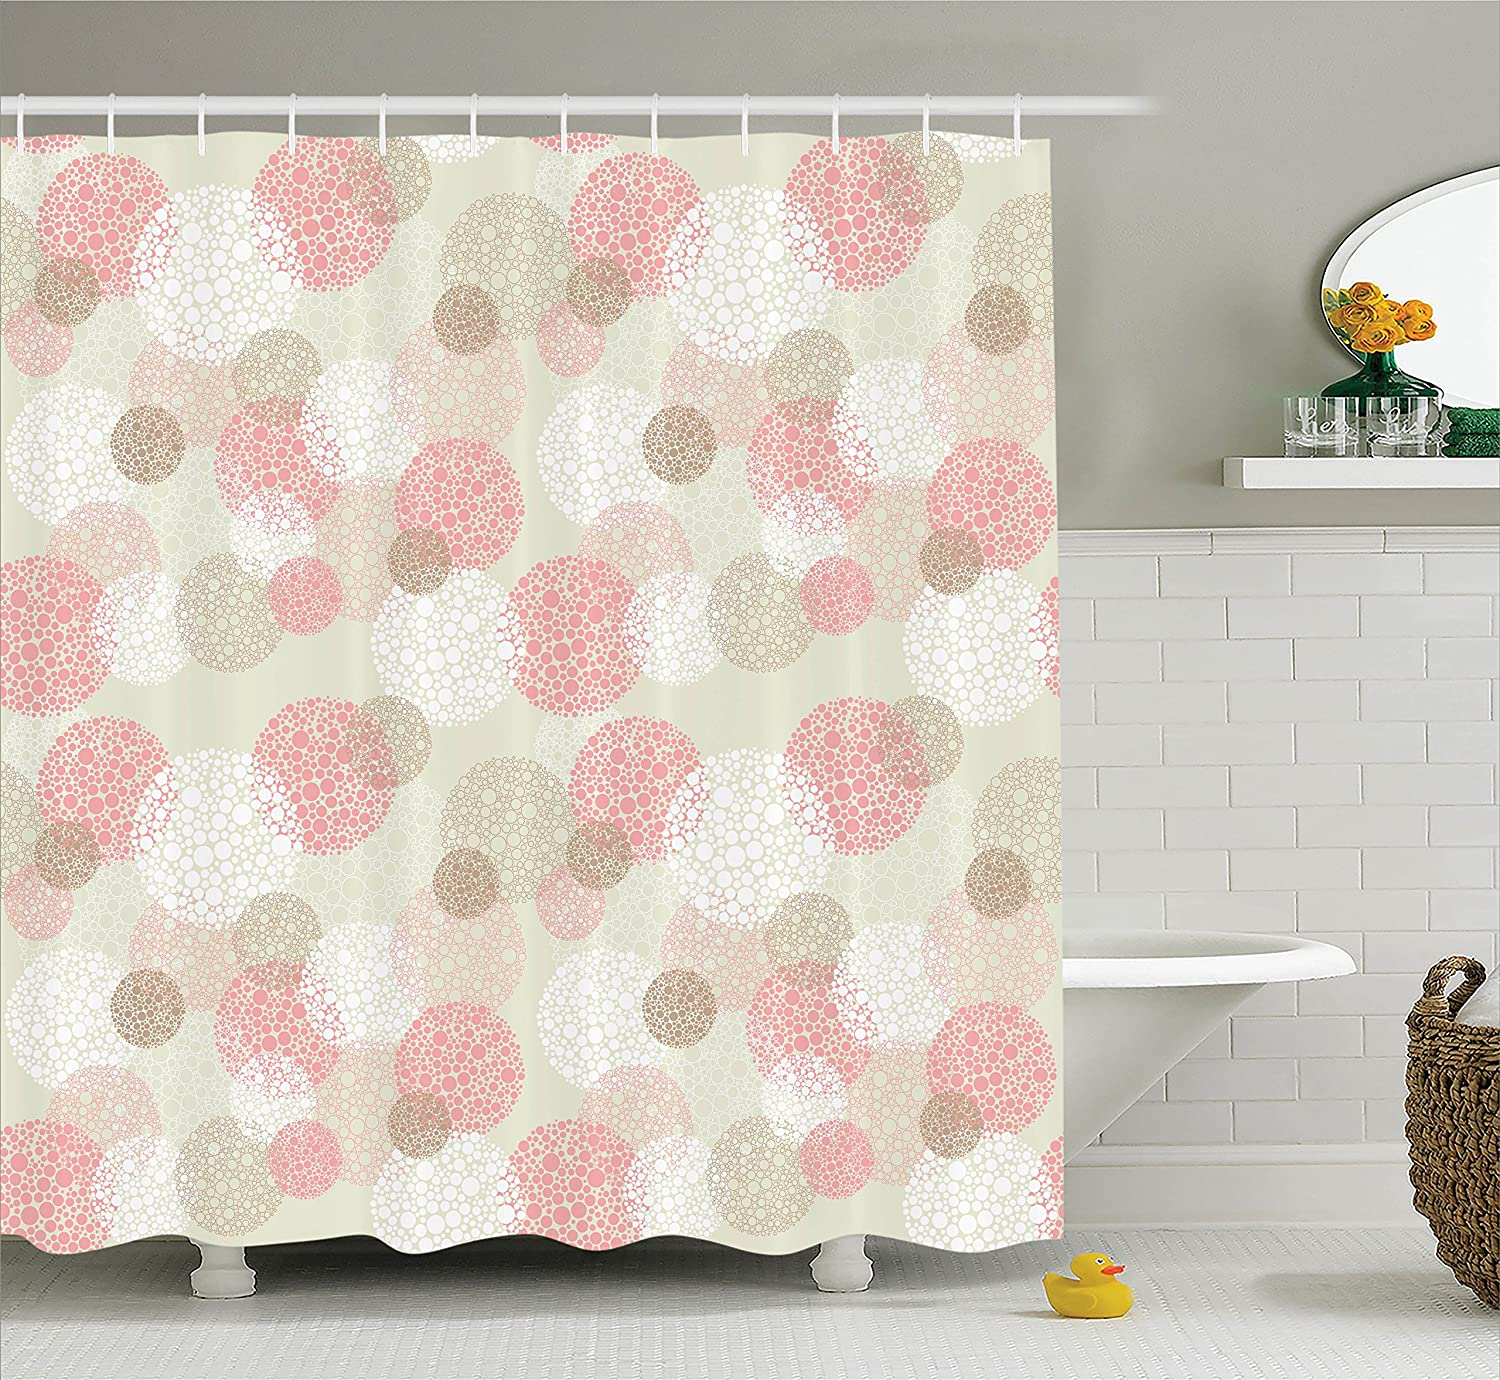 Natural Botanic Decoration with Roses Leaves and Pomegranates Romantic Image Fabric Bathroom Decor Set with Hooks 70 Inches Multicolor sc/_26512 Ambesonne Flower Decor Shower Curtain by